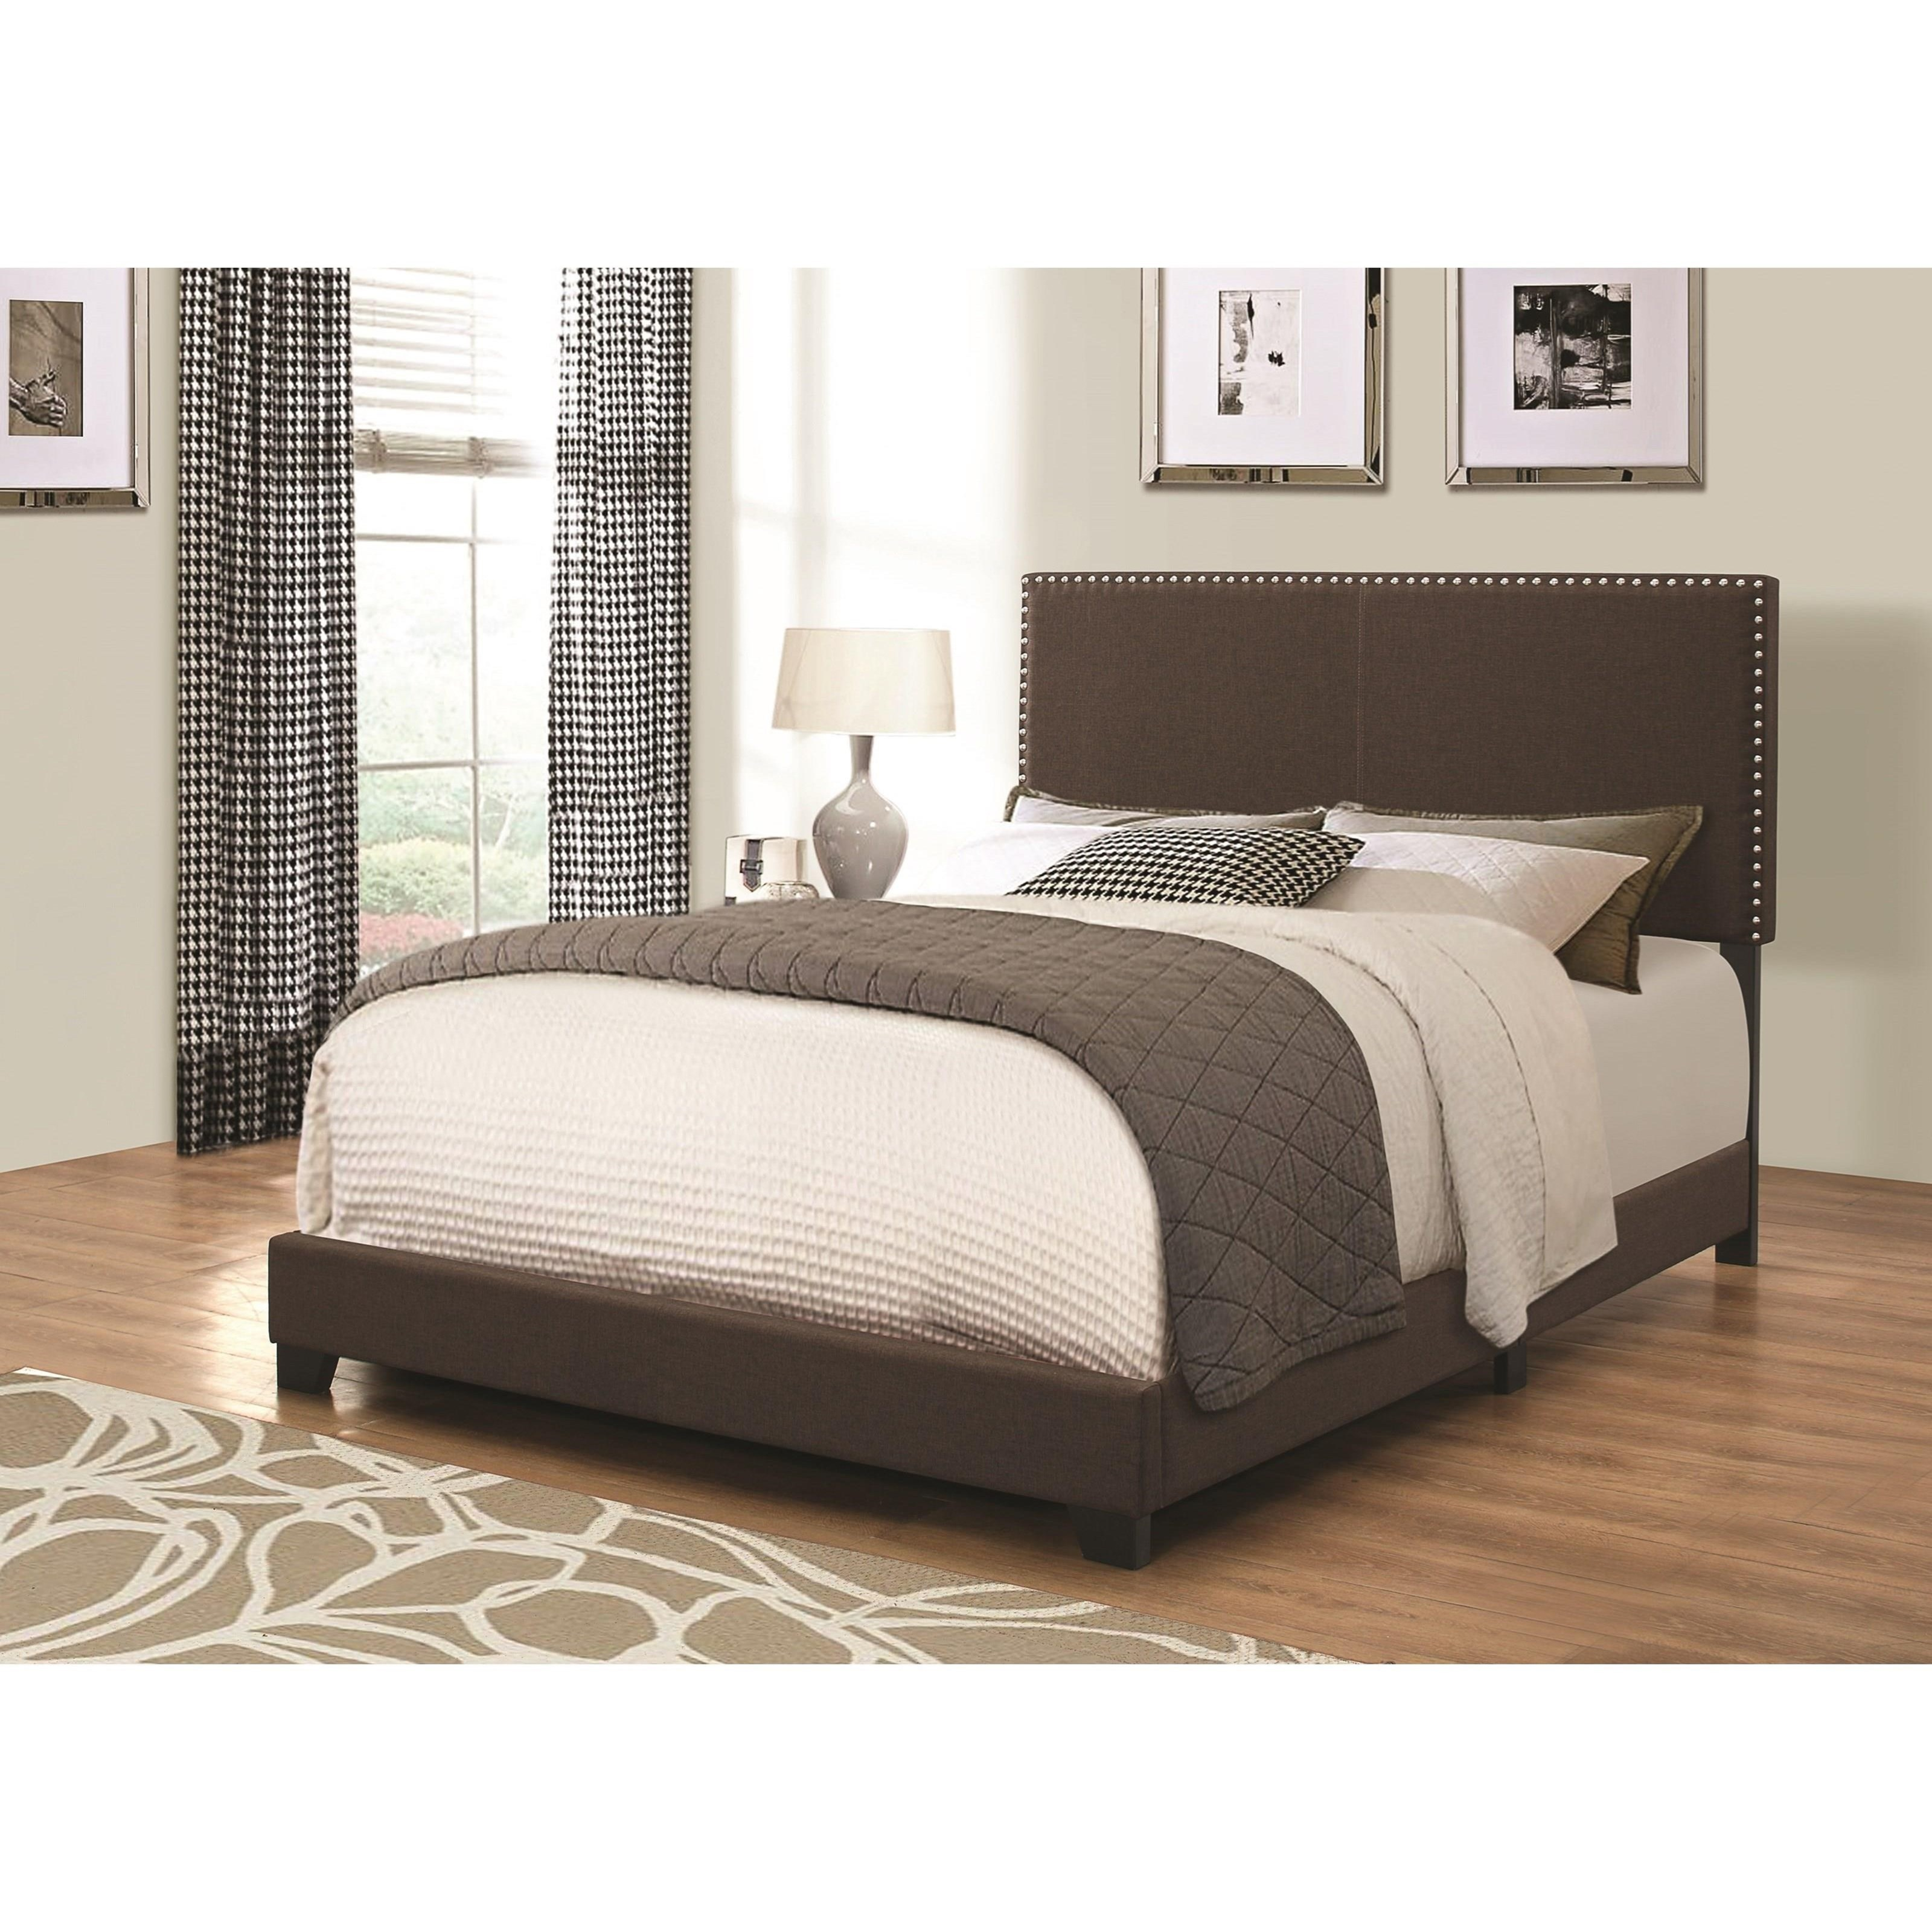 Coaster Upholstered Beds Full Bed - Item Number: 350081F